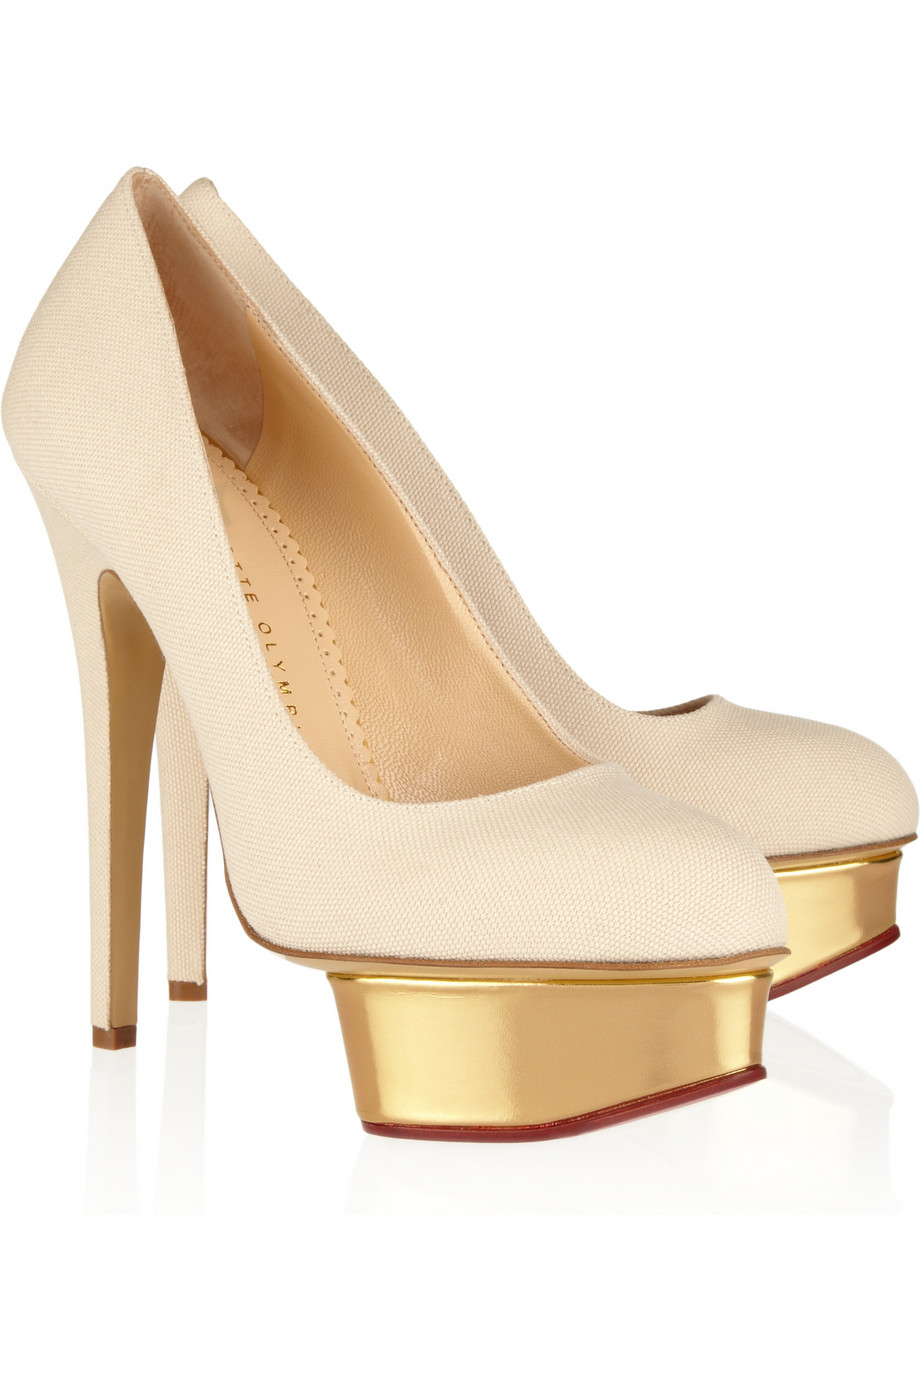 charlotte olympia the dolly canvas and leather platform pumps in beige sand lyst